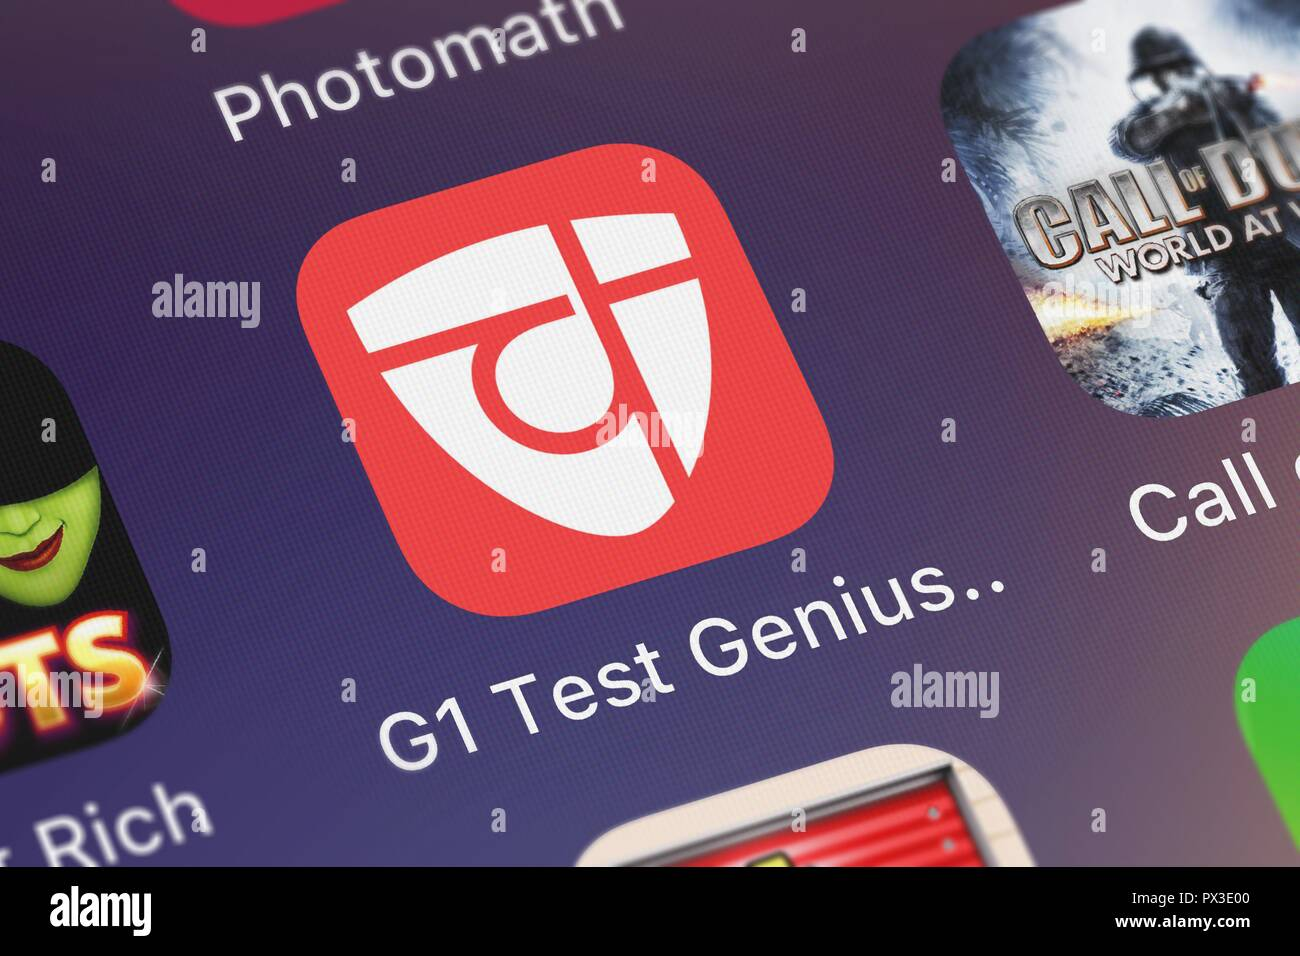 London, United Kingdom - October 19, 2018: Screenshot of the G1 Test Genius Ontario mobile app from Elegant eLearning icon on an iPhone. - Stock Image